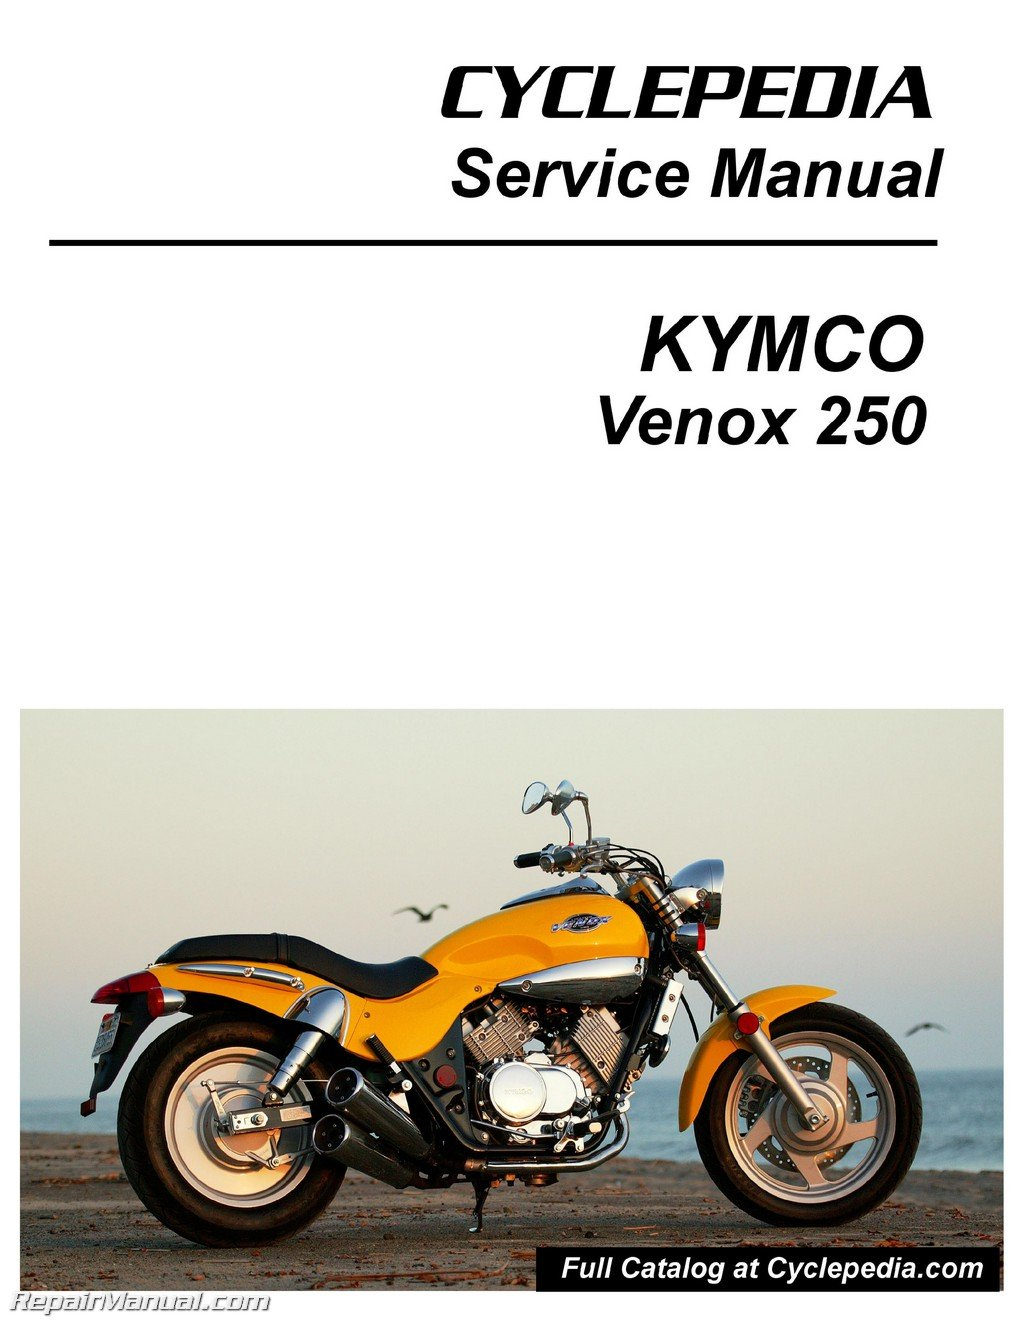 Cpp 221 Print Kymco Venox 250 Service Manual Printed By Cyclepedia 2008 Wiring Diagram Manufacturer Books